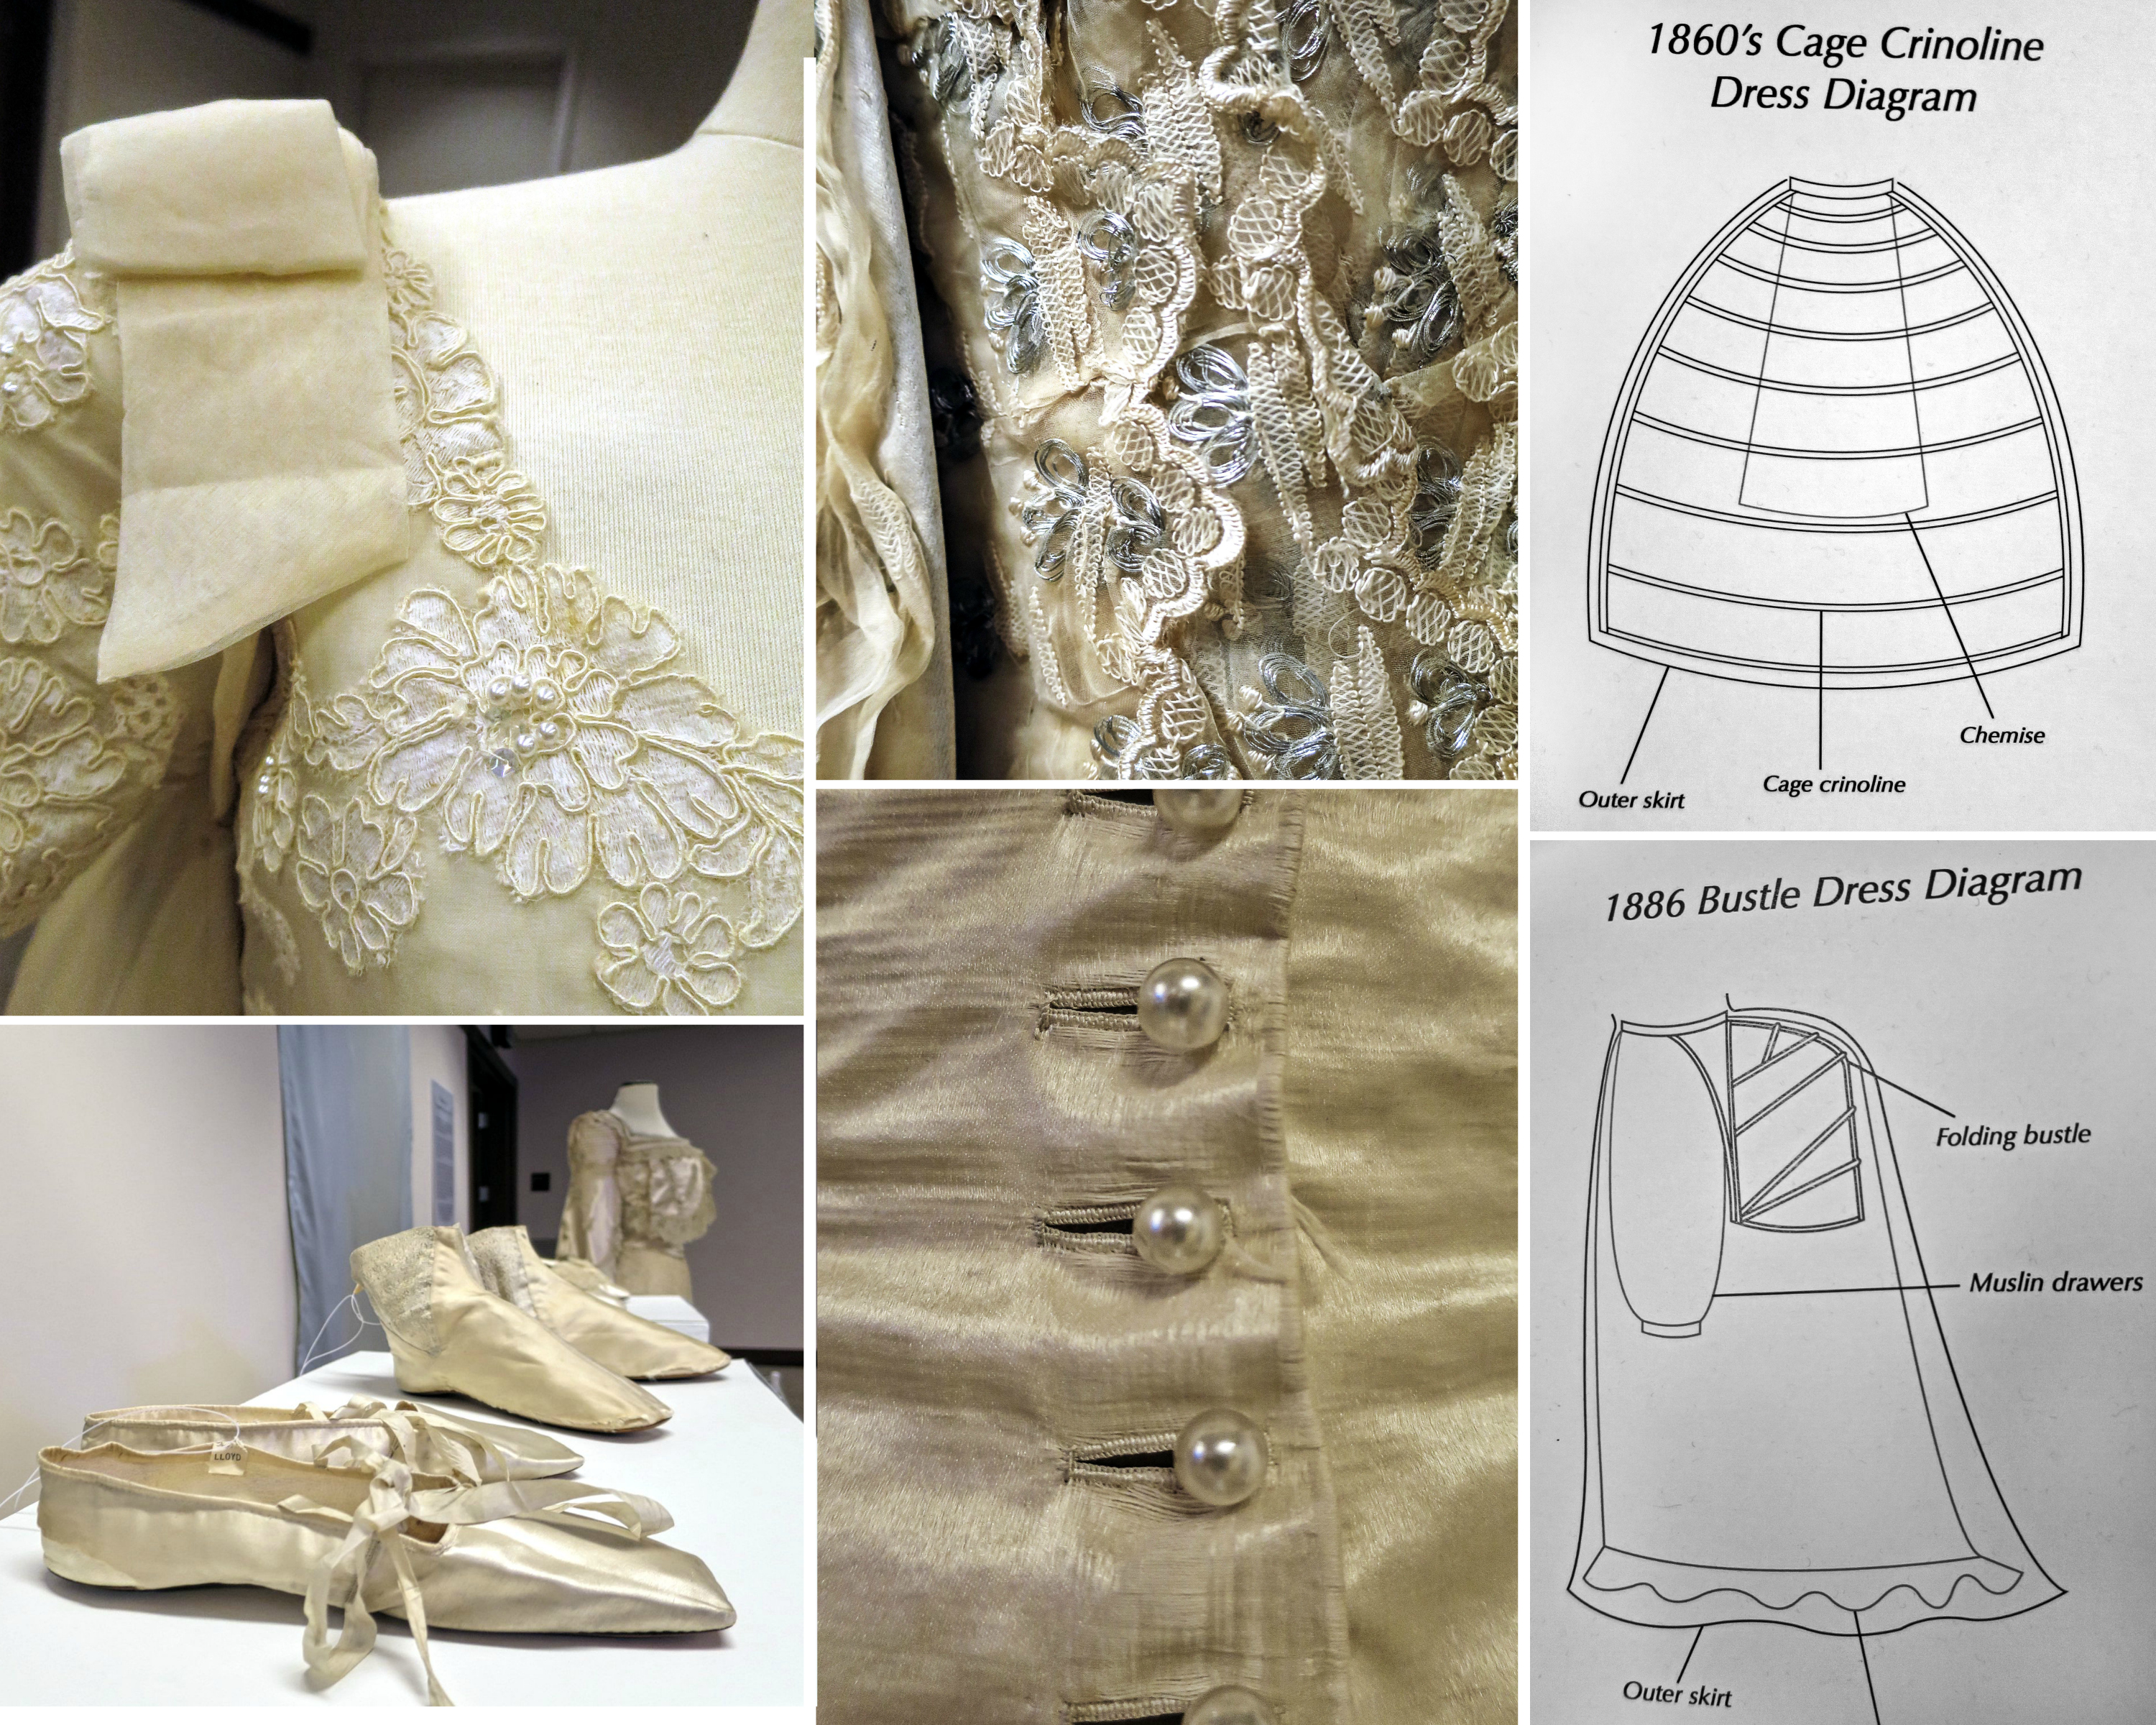 EastFallsLocal collage historic wedding dresses features